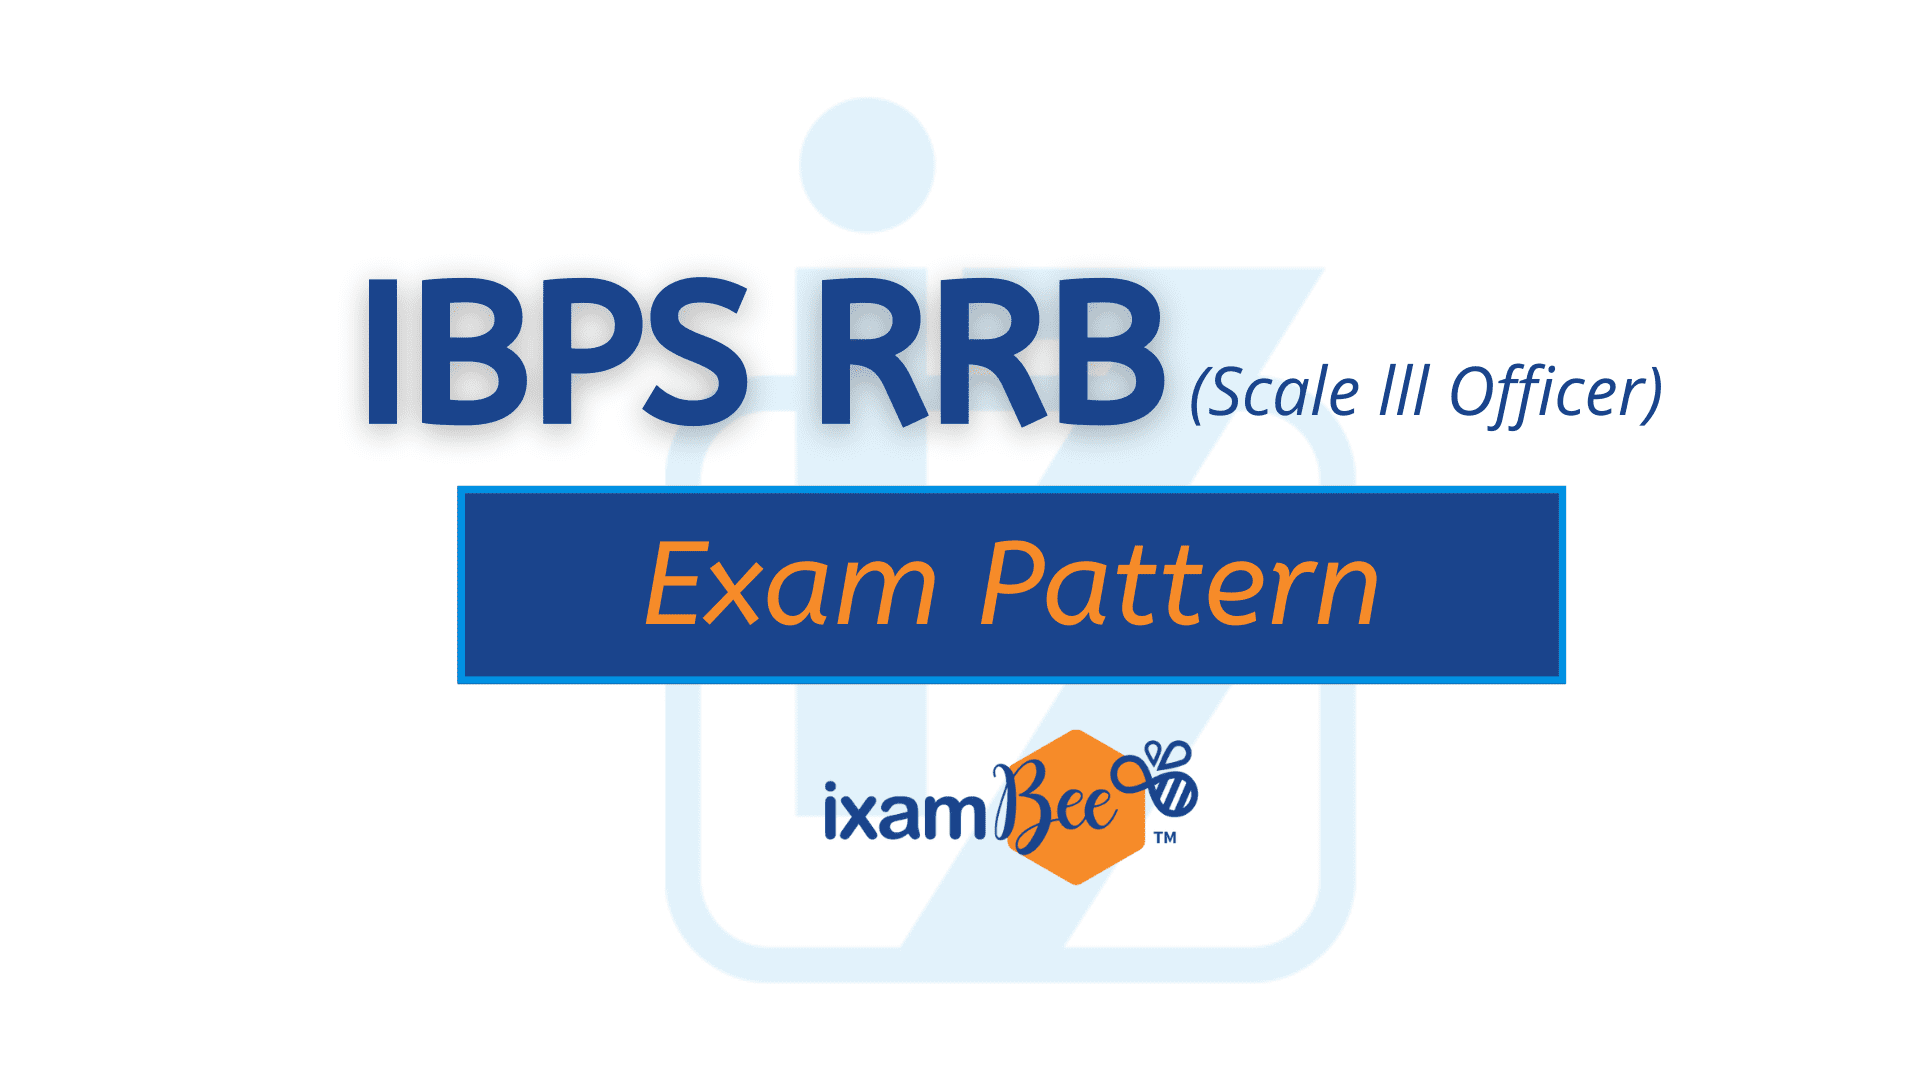 IBPS RRB Officer Scale III Exam Pattern